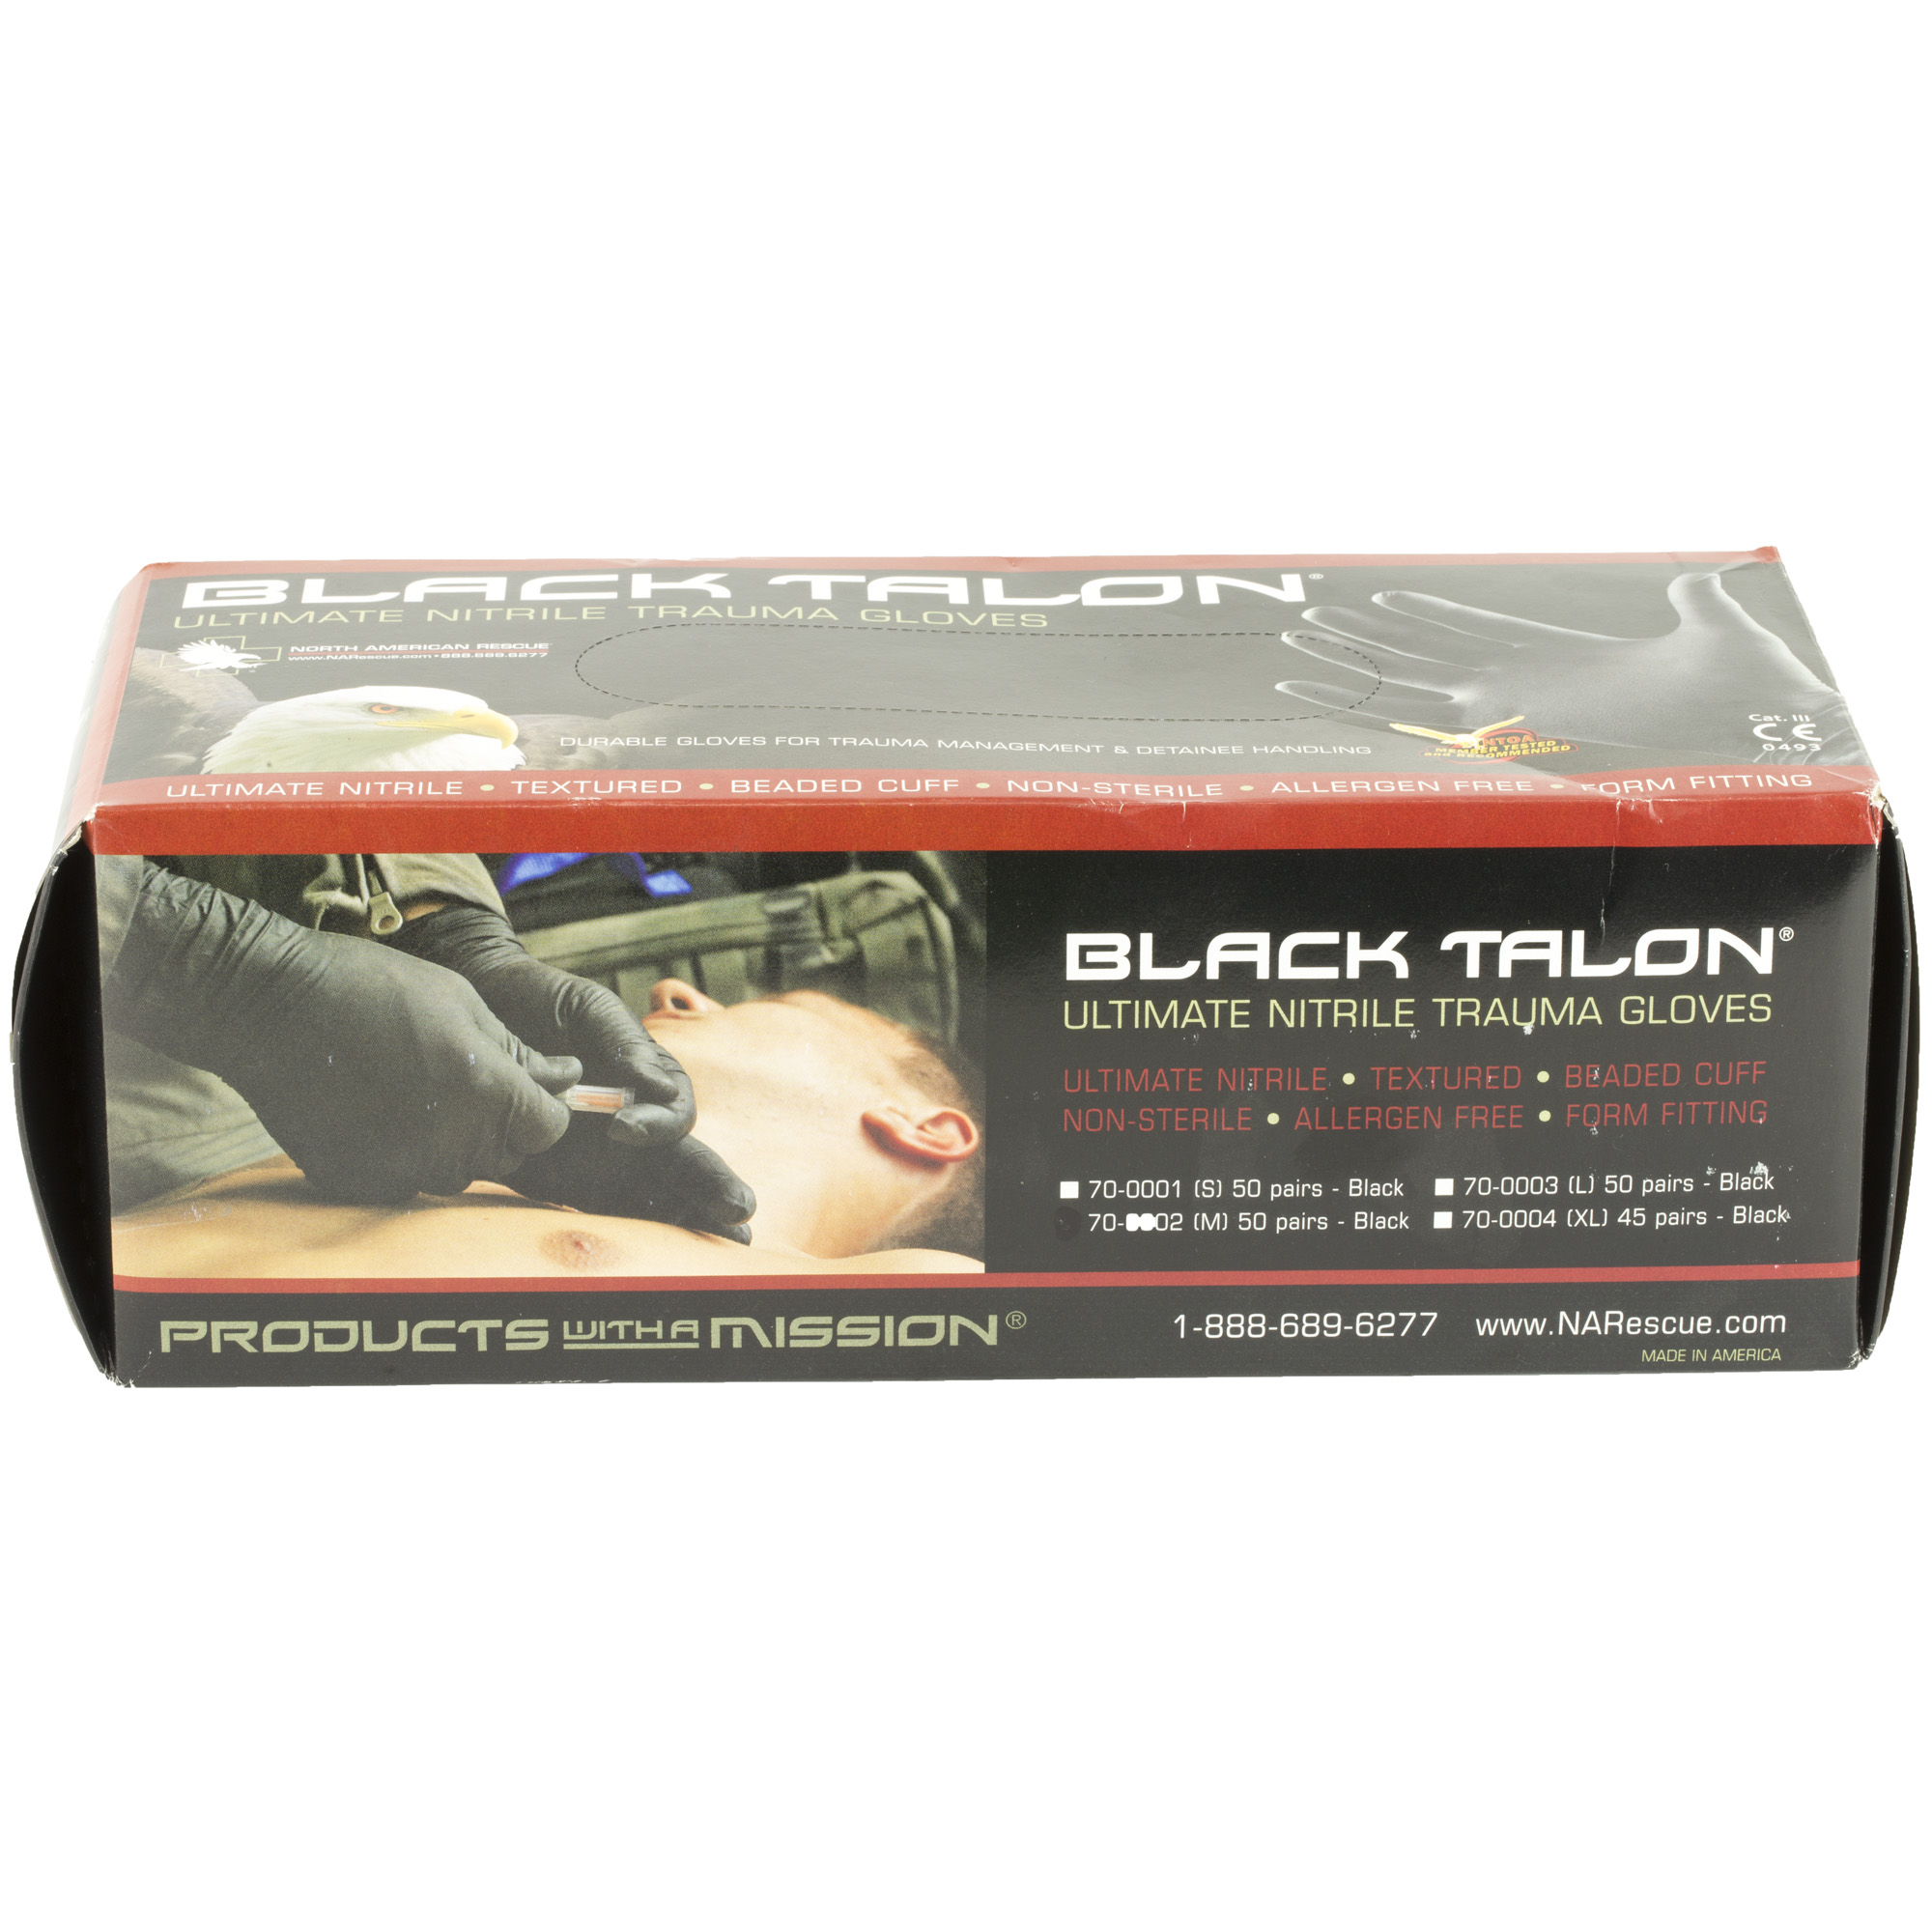 "Black Talon Ultimate Nitrile gloves are made of 100% nitrile material which is free of the allergens found in standard latex gloves. They are engineered to give the users high performance by offering both maximum protection and unsurpassed tactile sensitivity. This careful attention to detail includes textured fingertips to help with fine motor skills"" beaded cuffs for quick and easy donning and a thickened palm for durability and reliability. These ambidextrous gloves are packaged 50 pairs per box (Extra large"" 45 pairs per box); 10 boxes per case. Designed for single-use only."